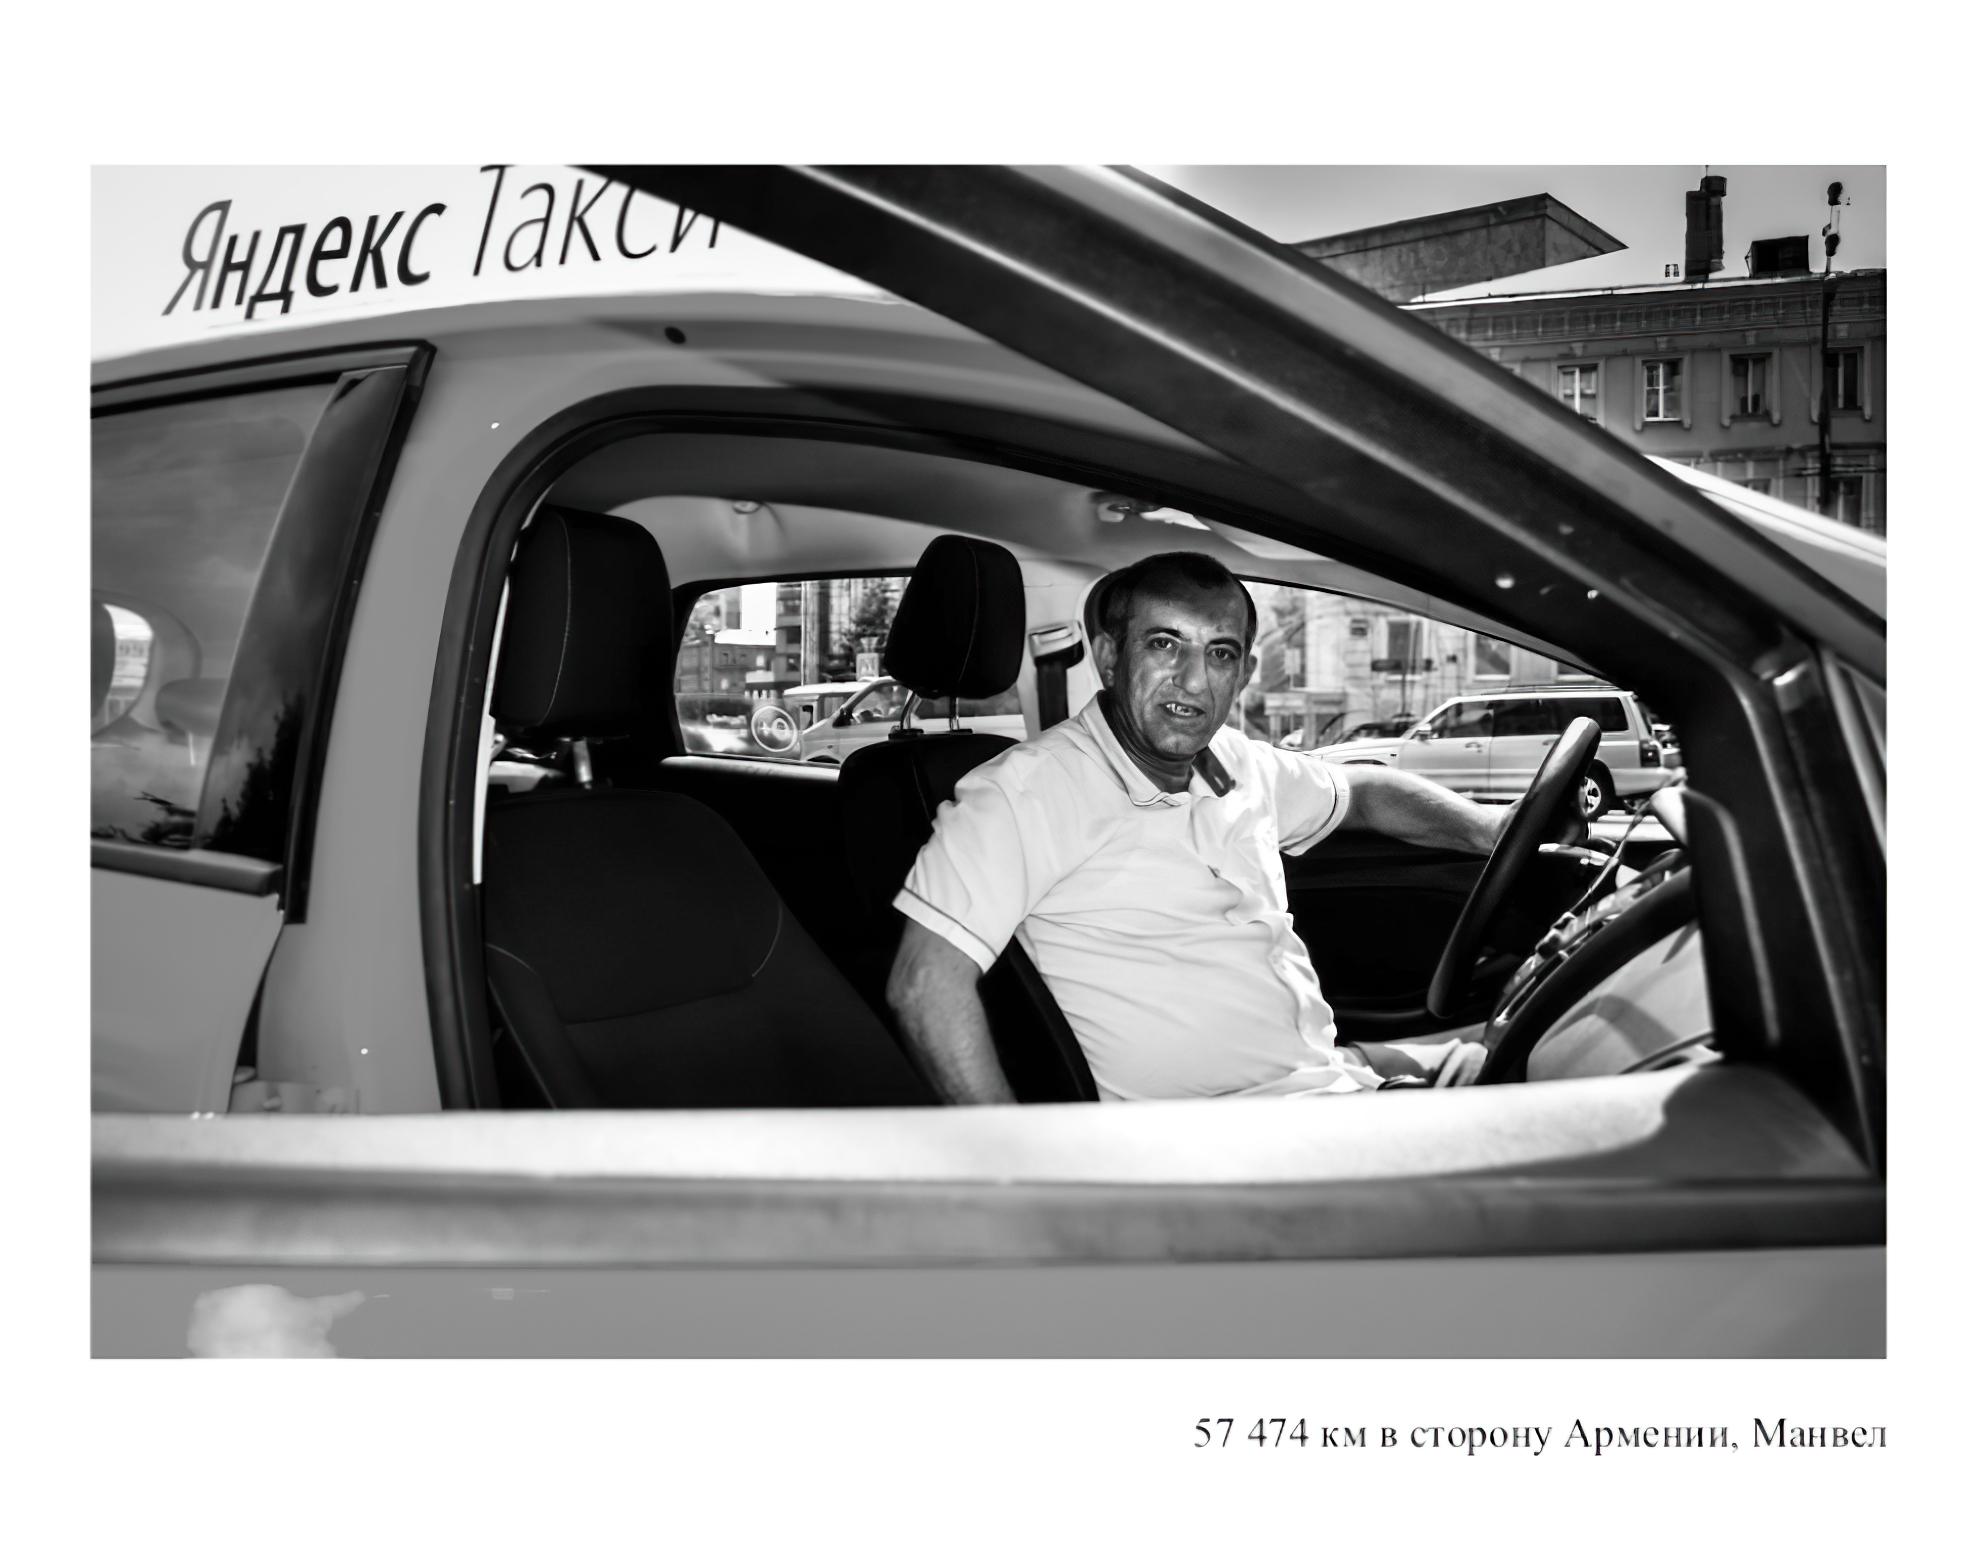 Road Home, 2016. This project is about the modern-day odyssey of Moscow's cab drivers—an absurd journey where one has to travel 400,000 km to get back to the Caucasus that in fact are only 3,000 km away